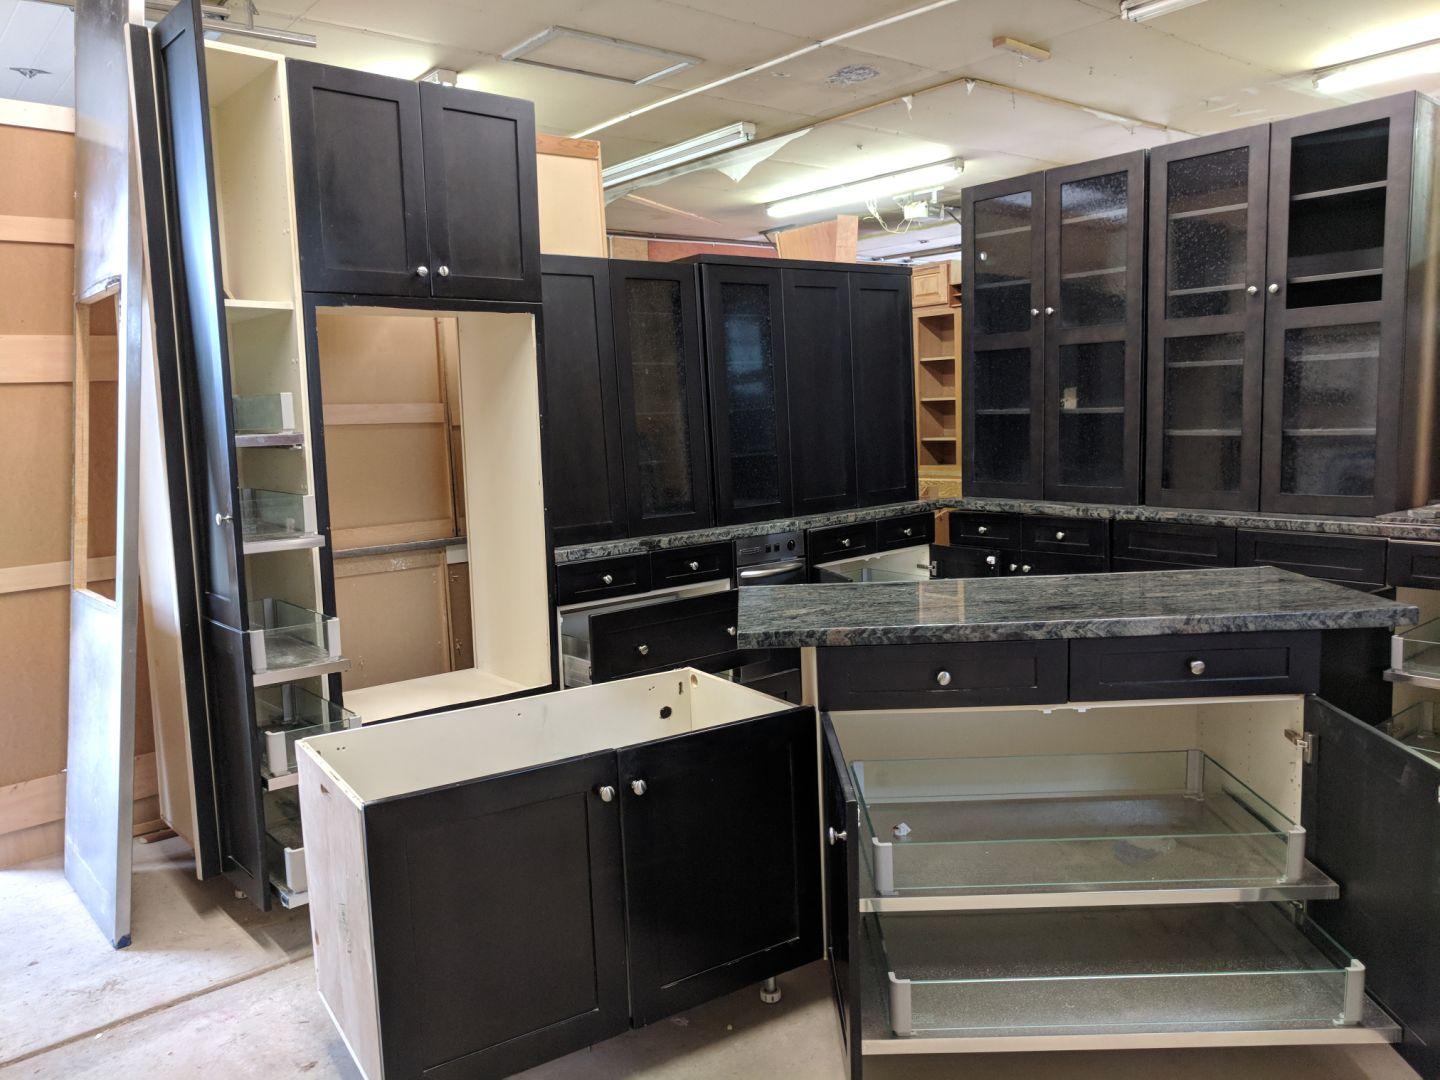 Charcoal Shaker Kitchen w/ Pullouts & Under-Cabinet lighting + Exotic Granite!- $2500